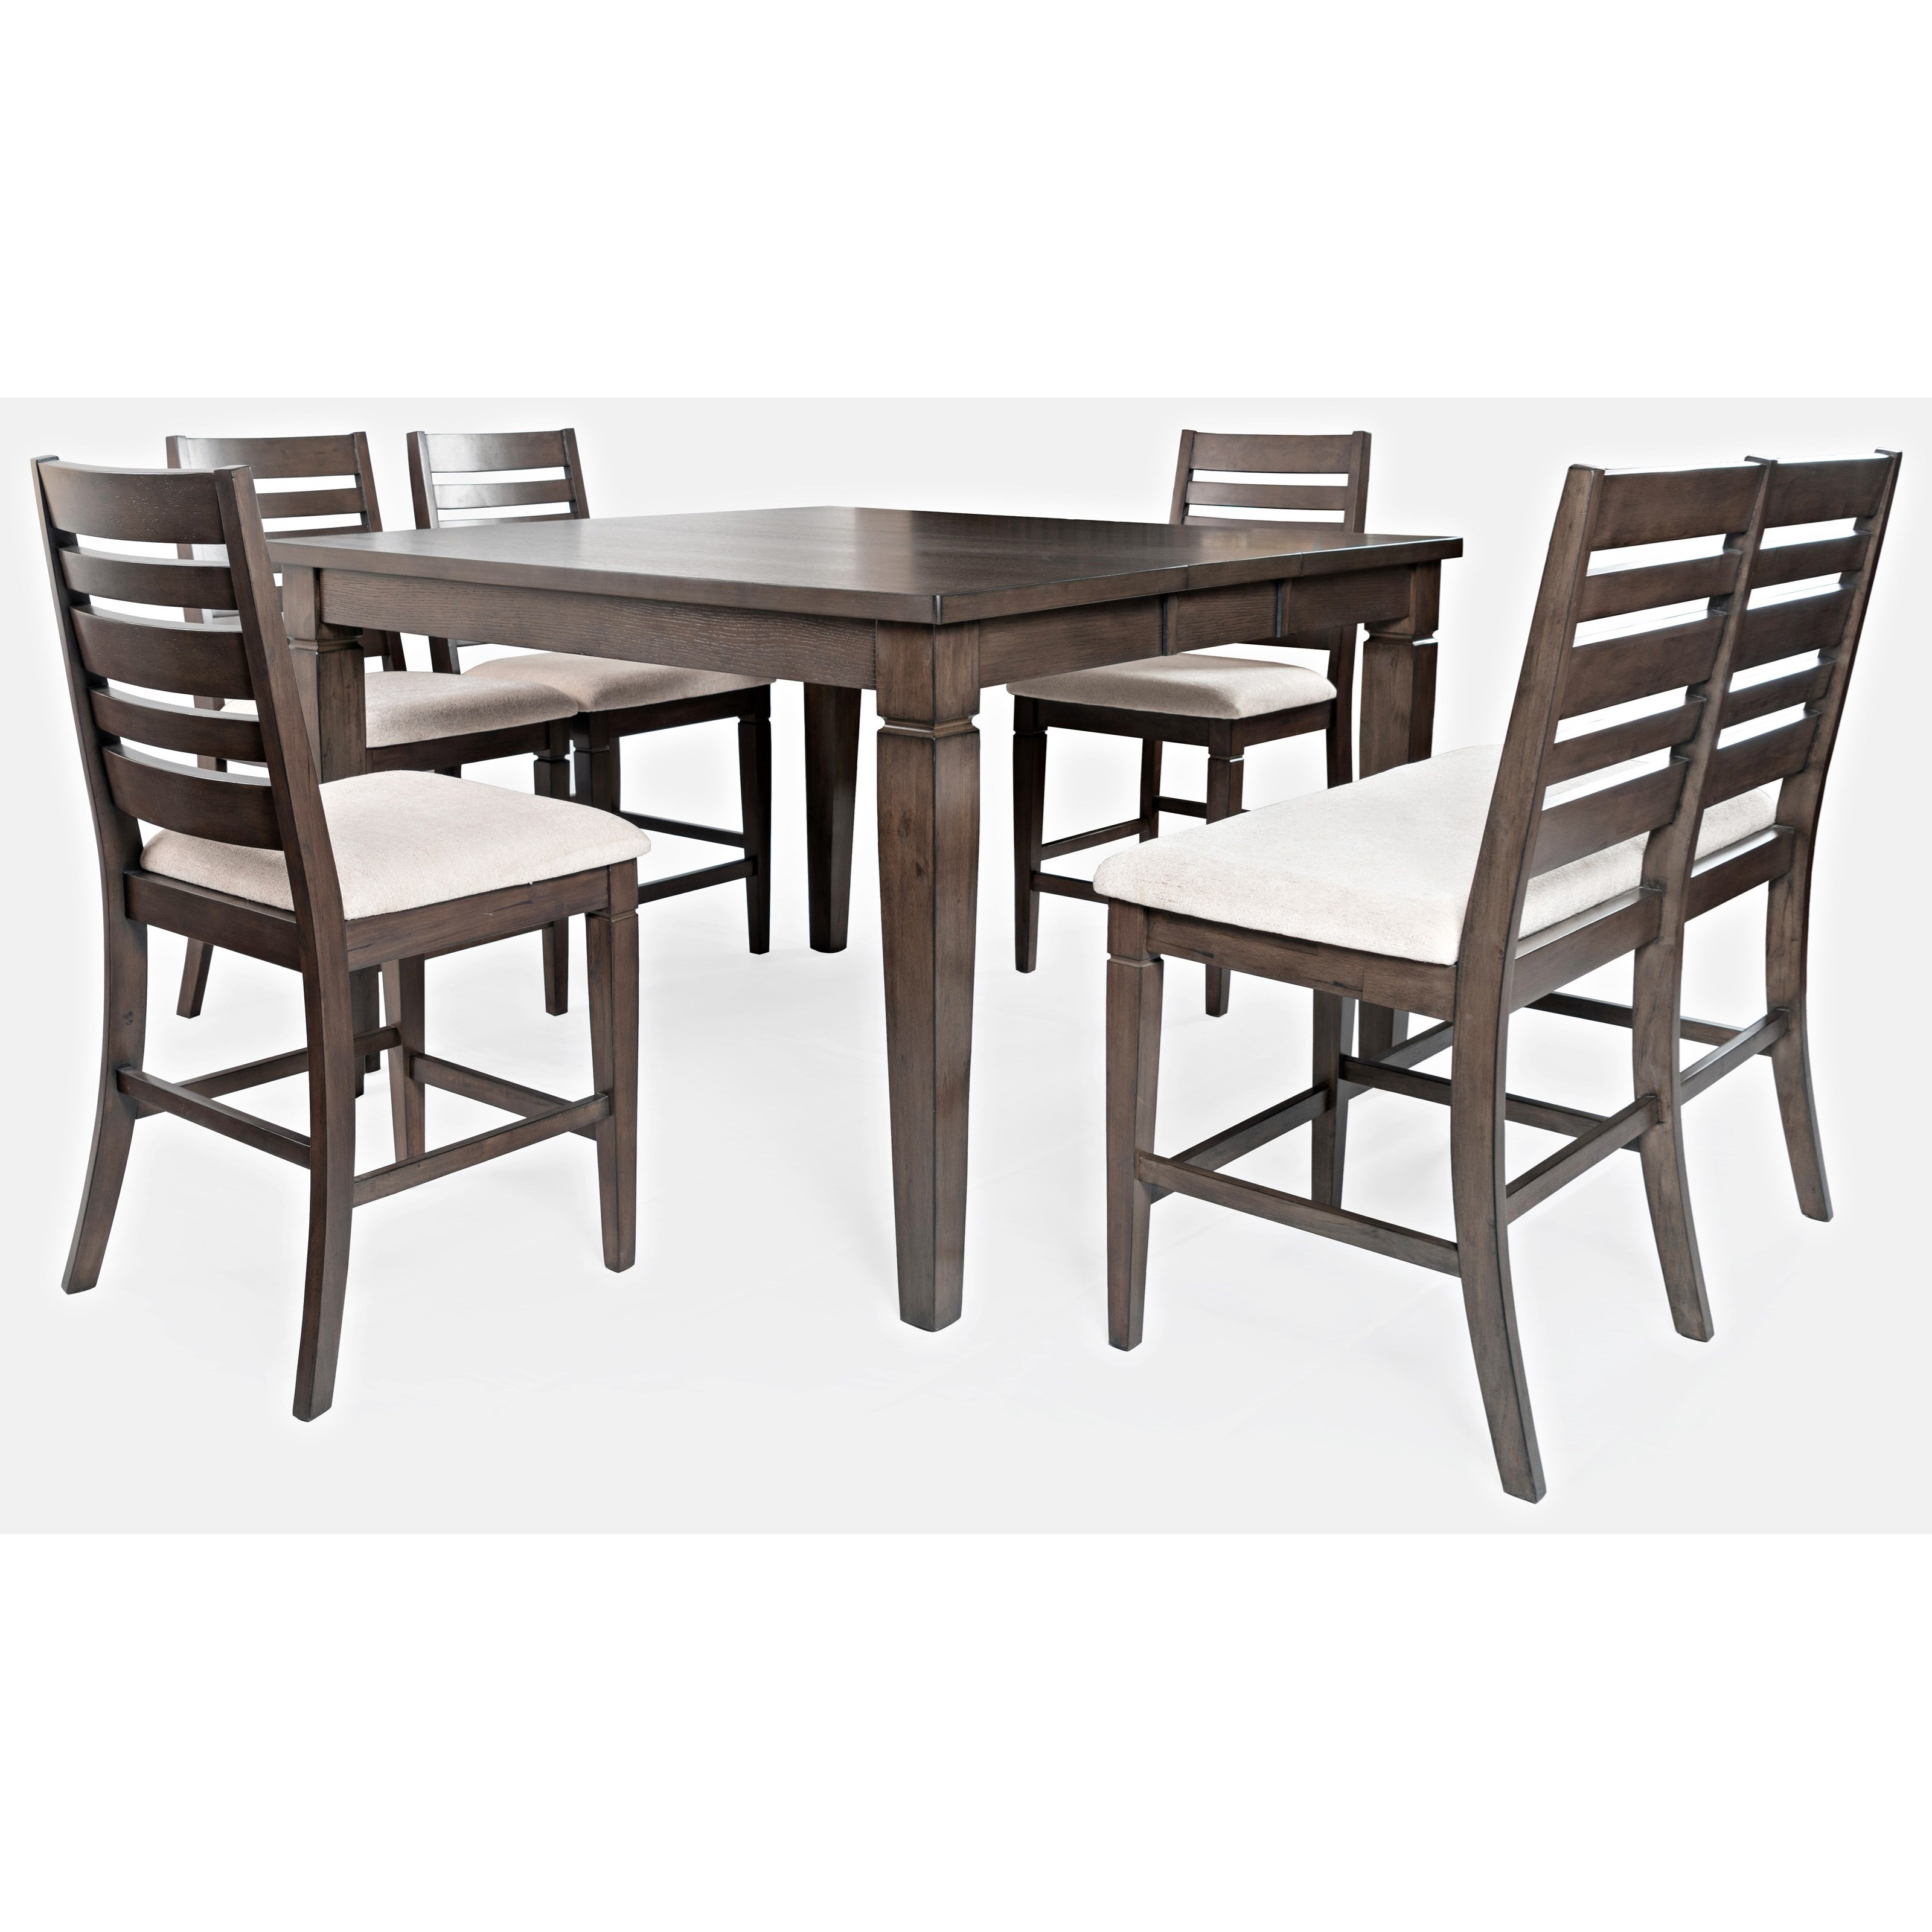 Lincoln Square Counter Height Table and Chair Set by Jofran at Zak's Home